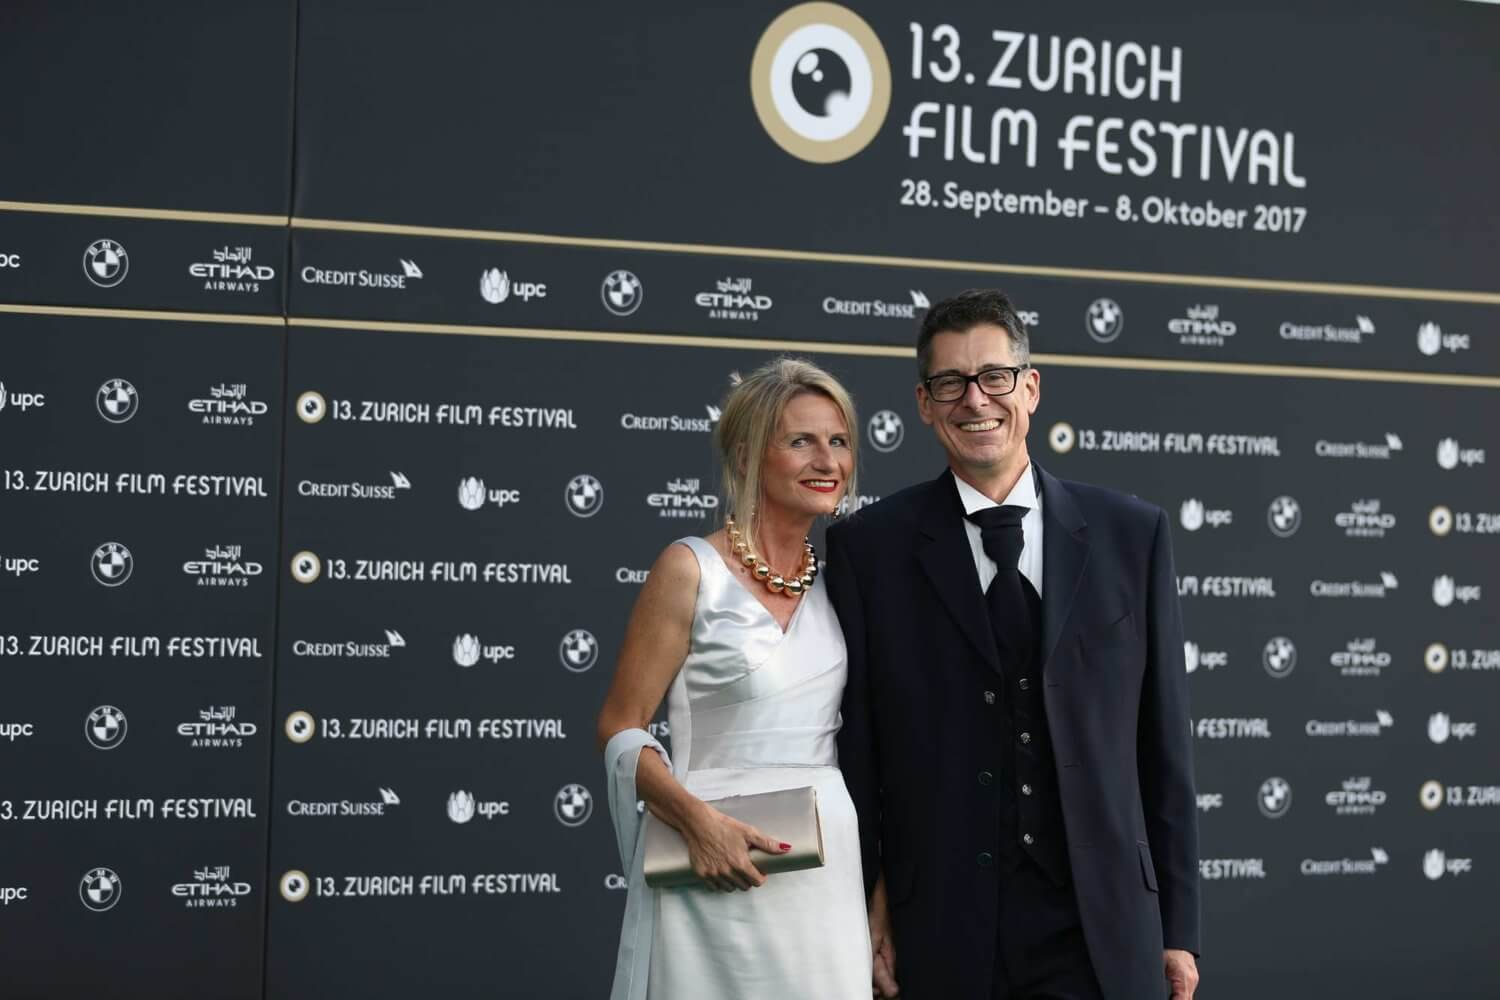 Big Gala Nite at Zurich Film Festival with Bucherer